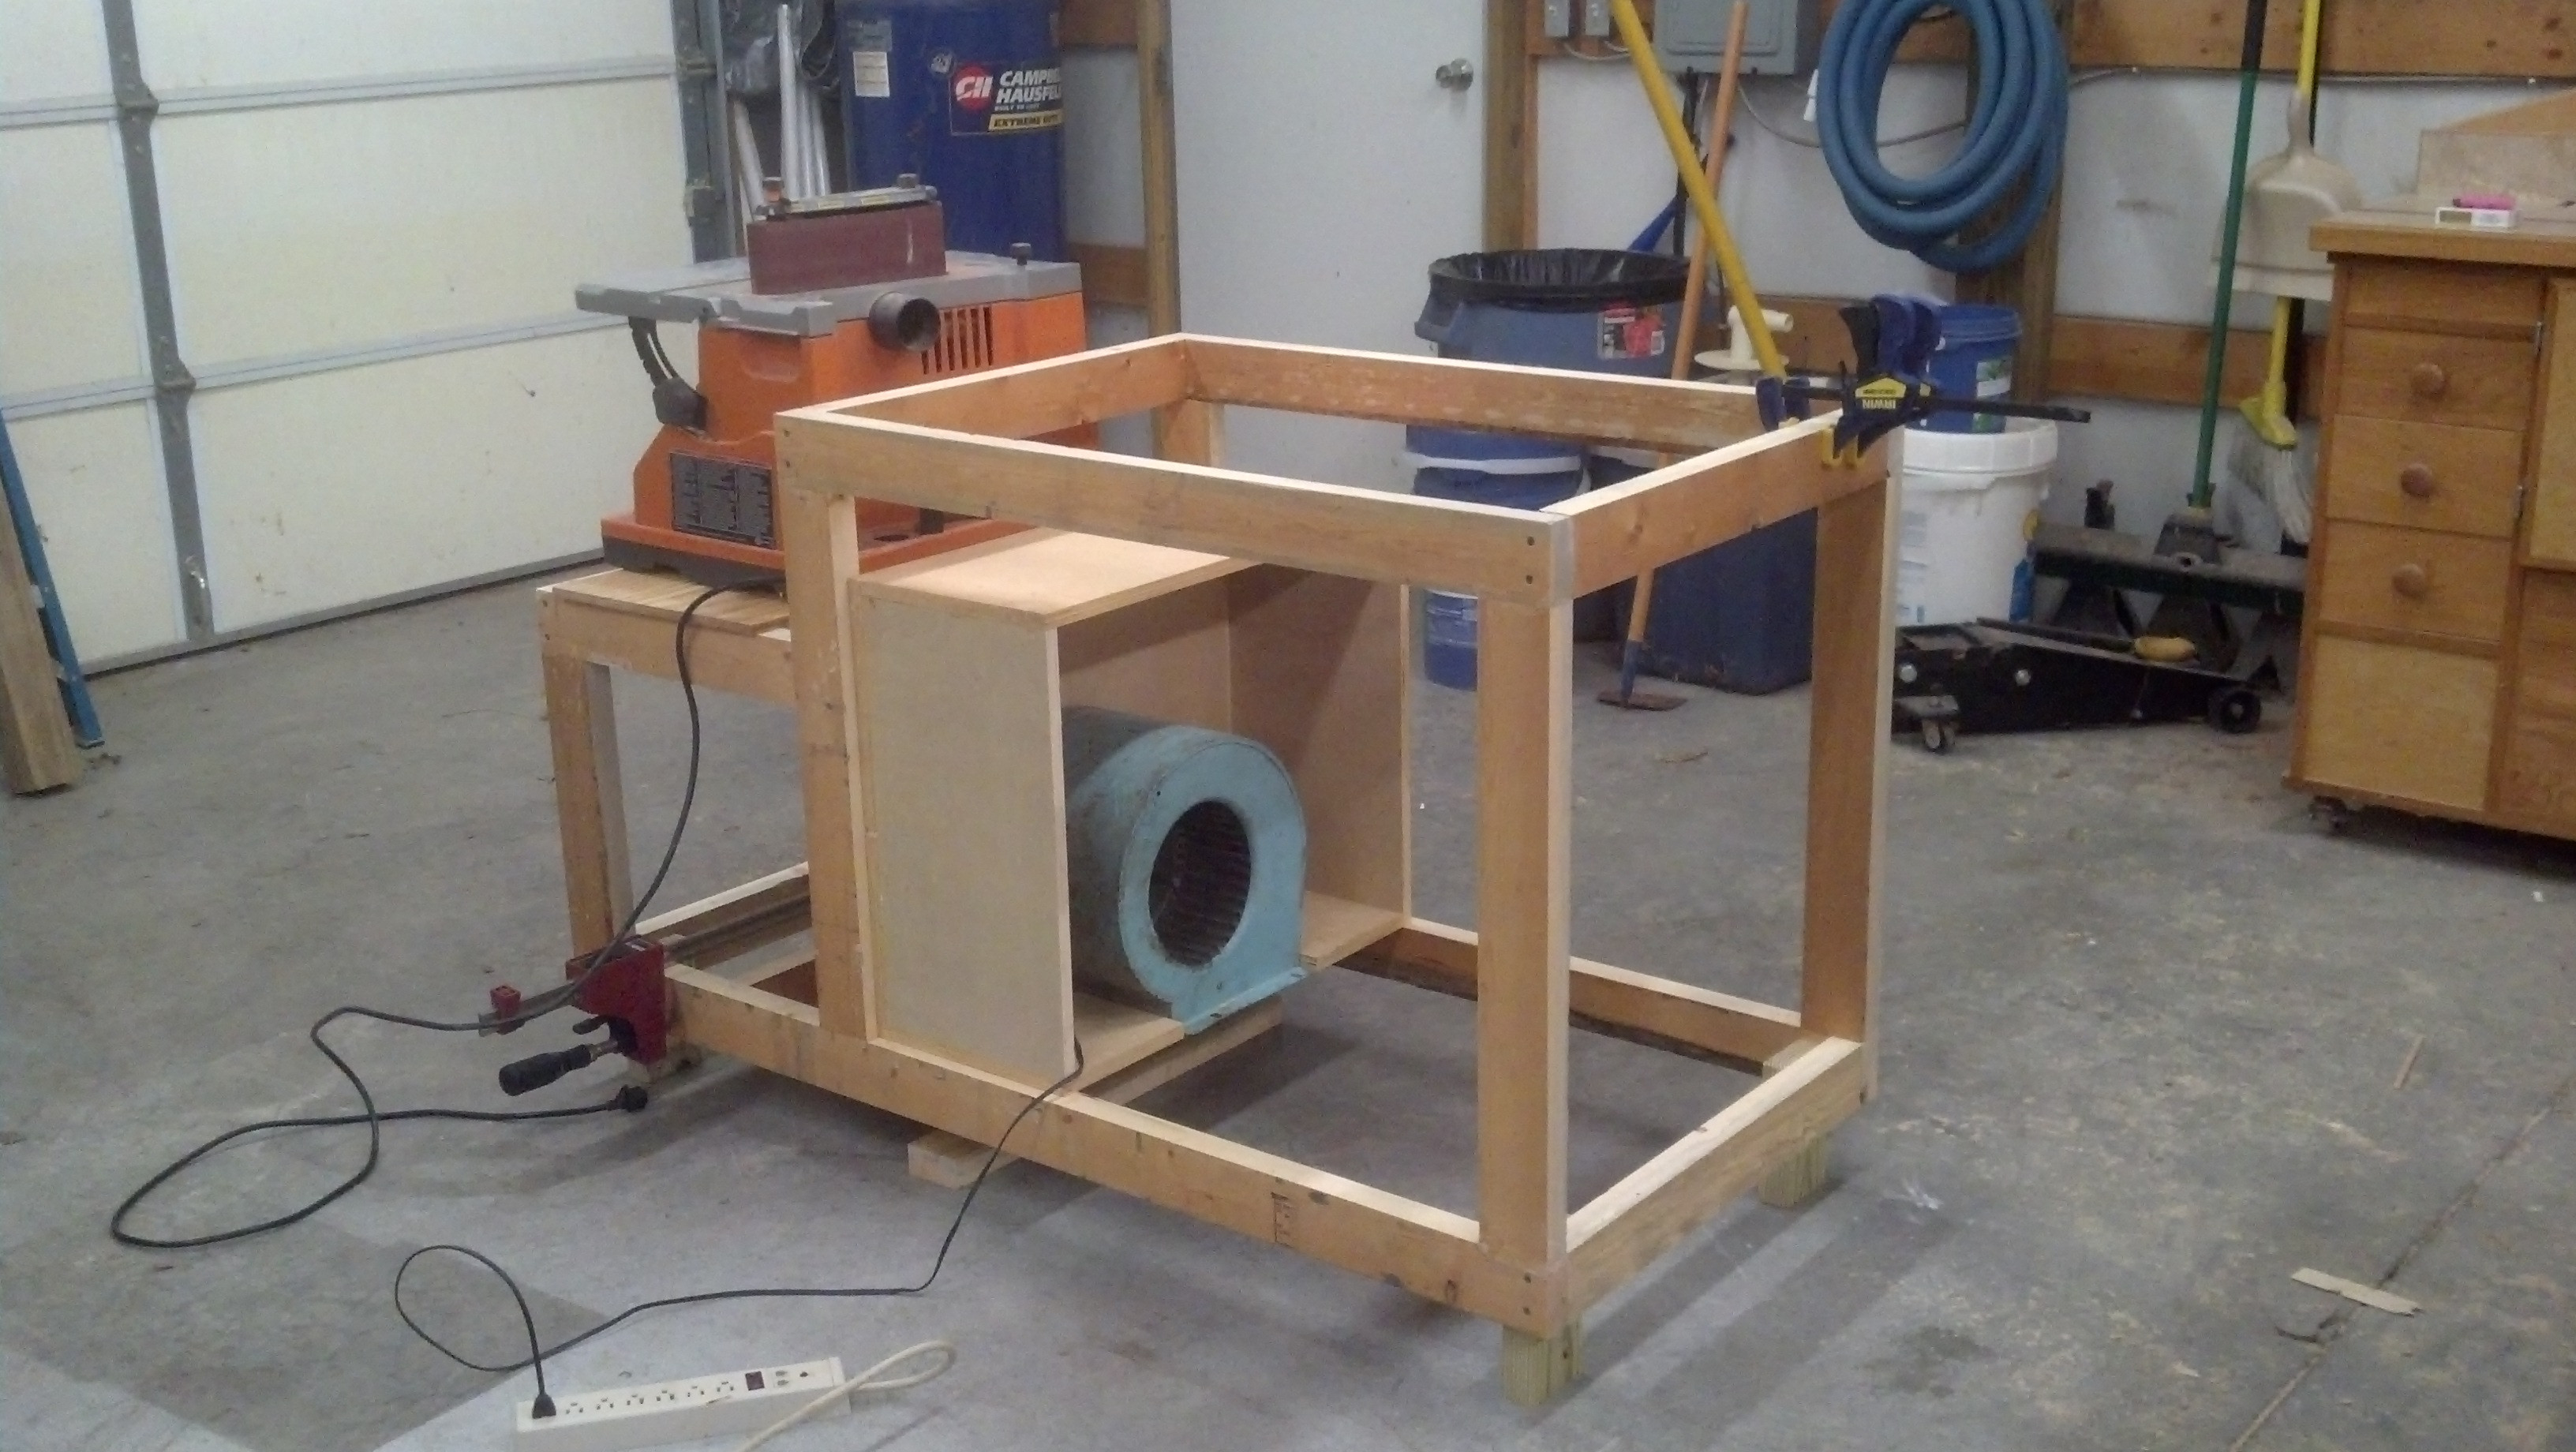 Best ideas about DIY Downdraft Table . Save or Pin Homemade downdraft table Now.